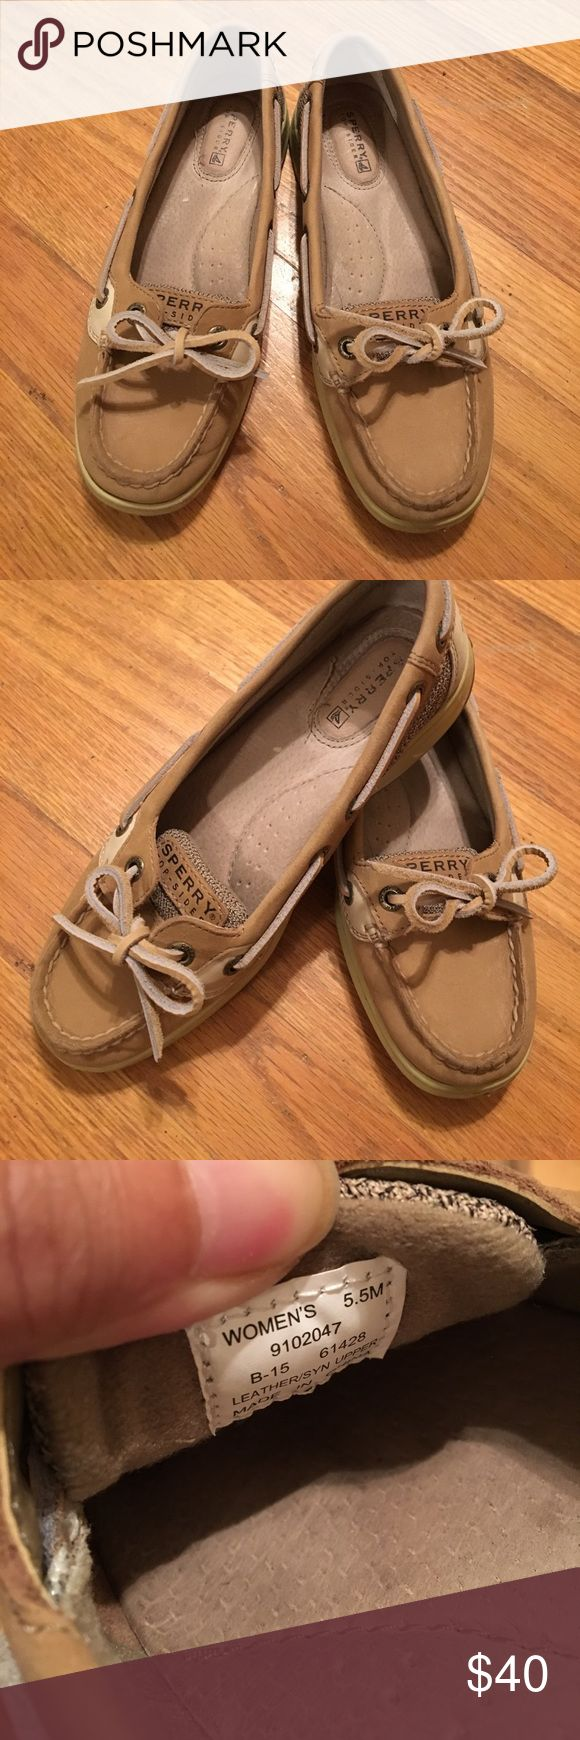 Women's sperry angelfish Like new, hardly any signs of wear. Size 5.5 but fit like a women's 6 (since they have to be a bit tighter to not slip off each step). Quality is shown in the price, but still willing to take offers. Sperry Shoes Flats & Loafers